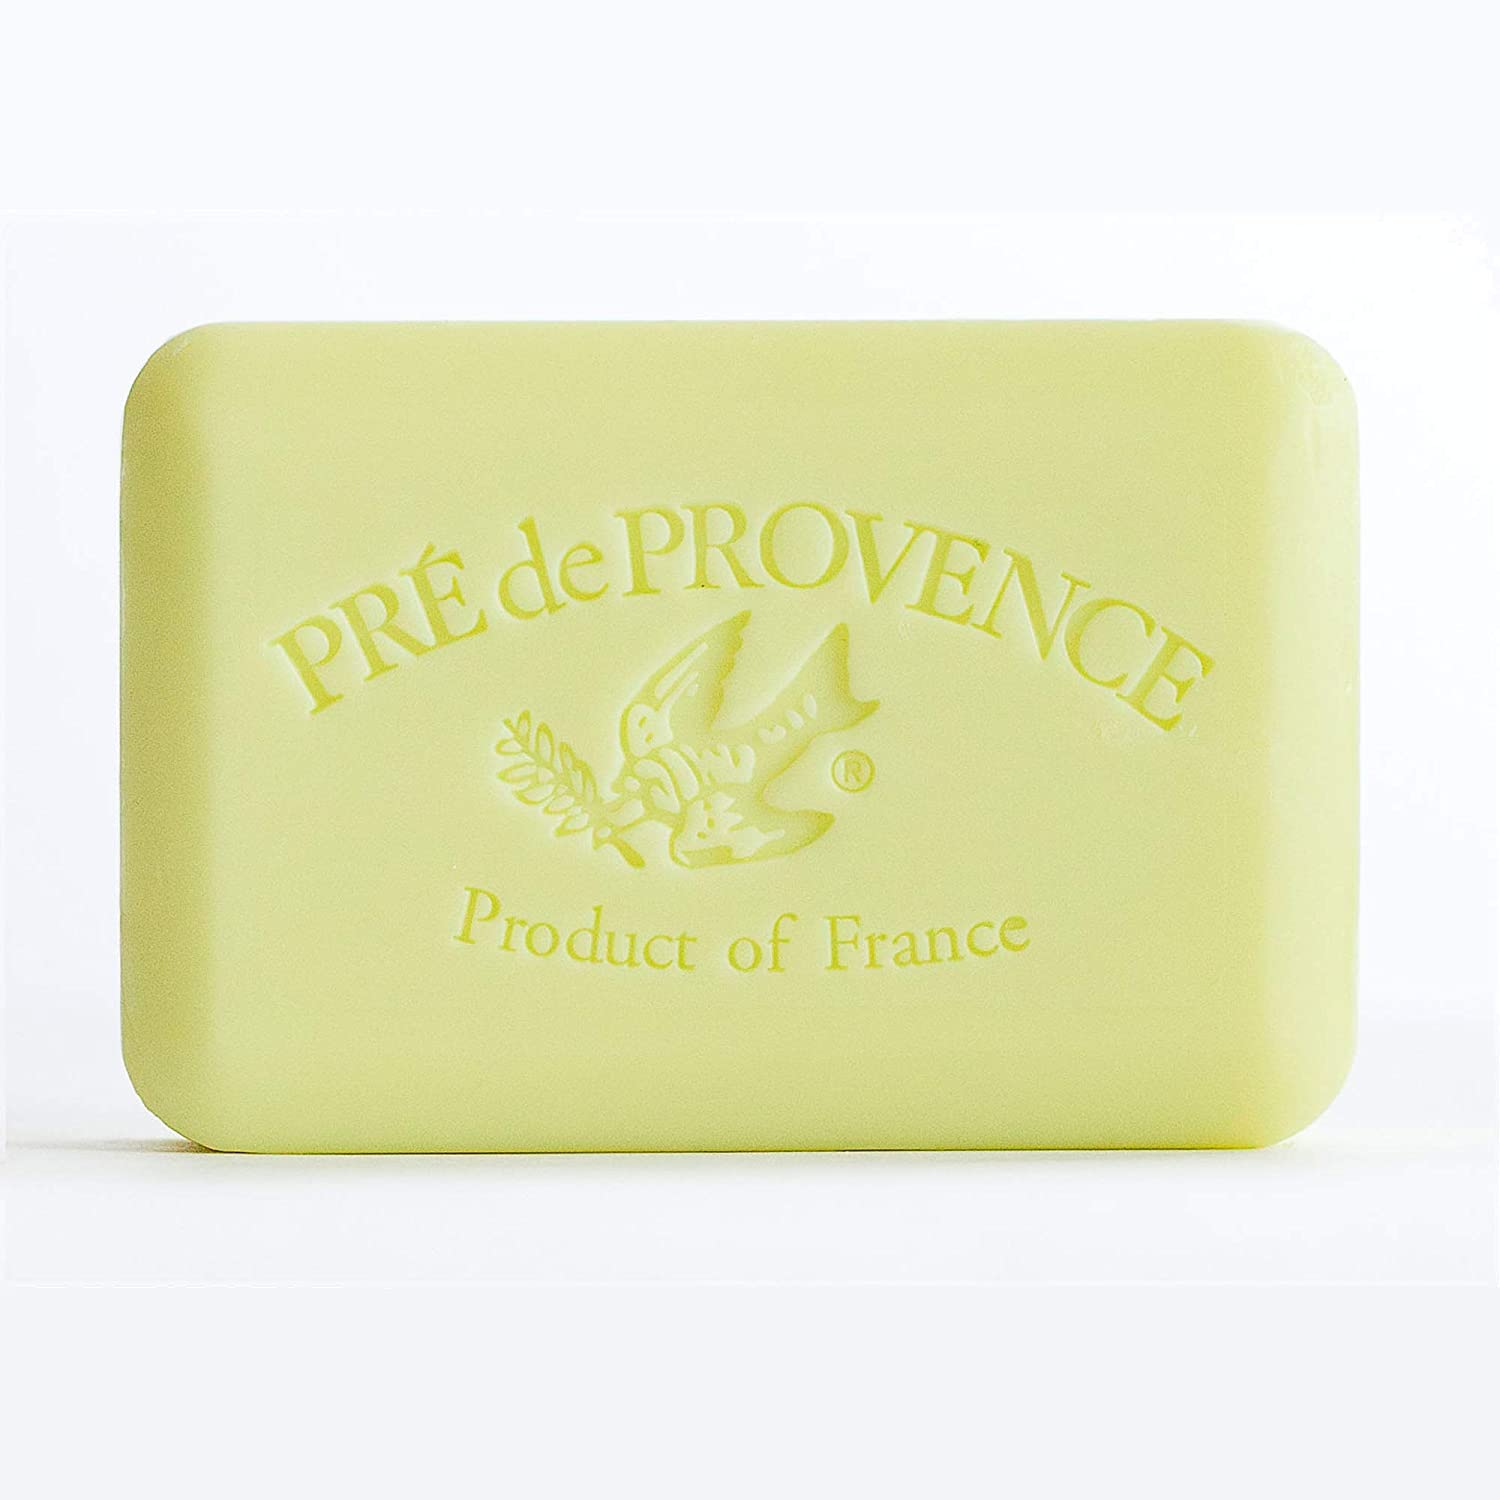 Pre' De Provence Artisanal French Soap Bar Enriched With Shea Butter, Linden, 250 Gram